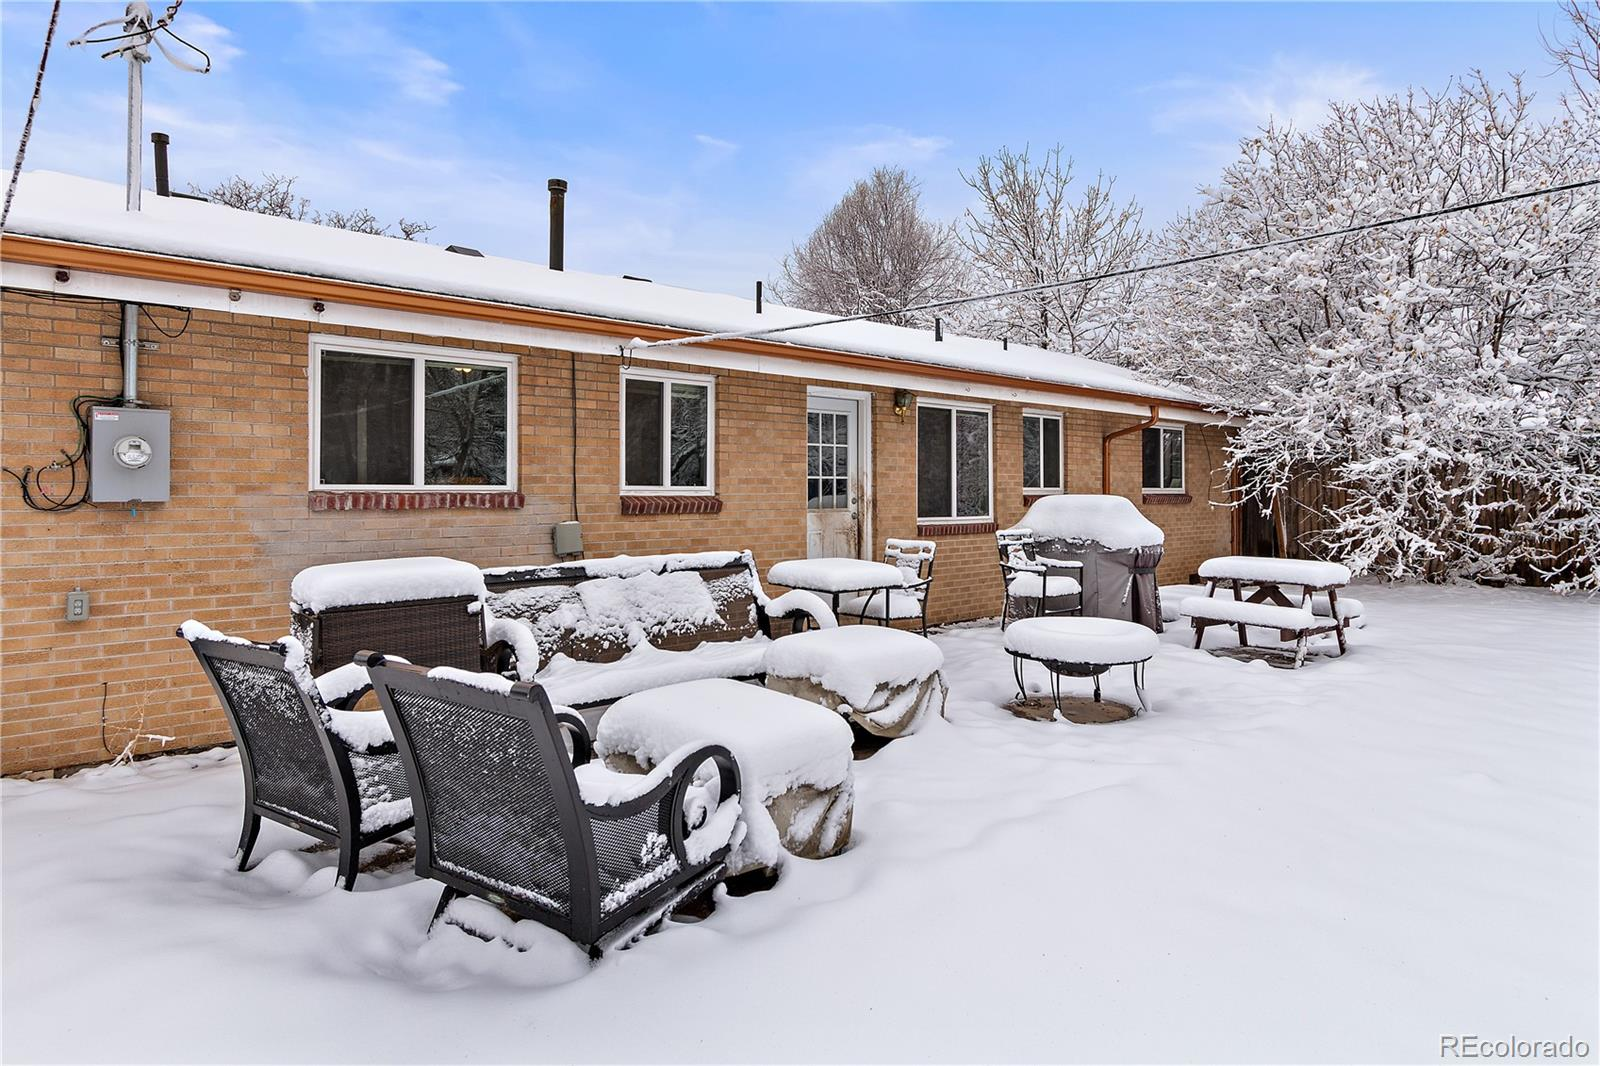 MLS# 5584211 - 23 - 8105 W 16th Place, Lakewood, CO 80214